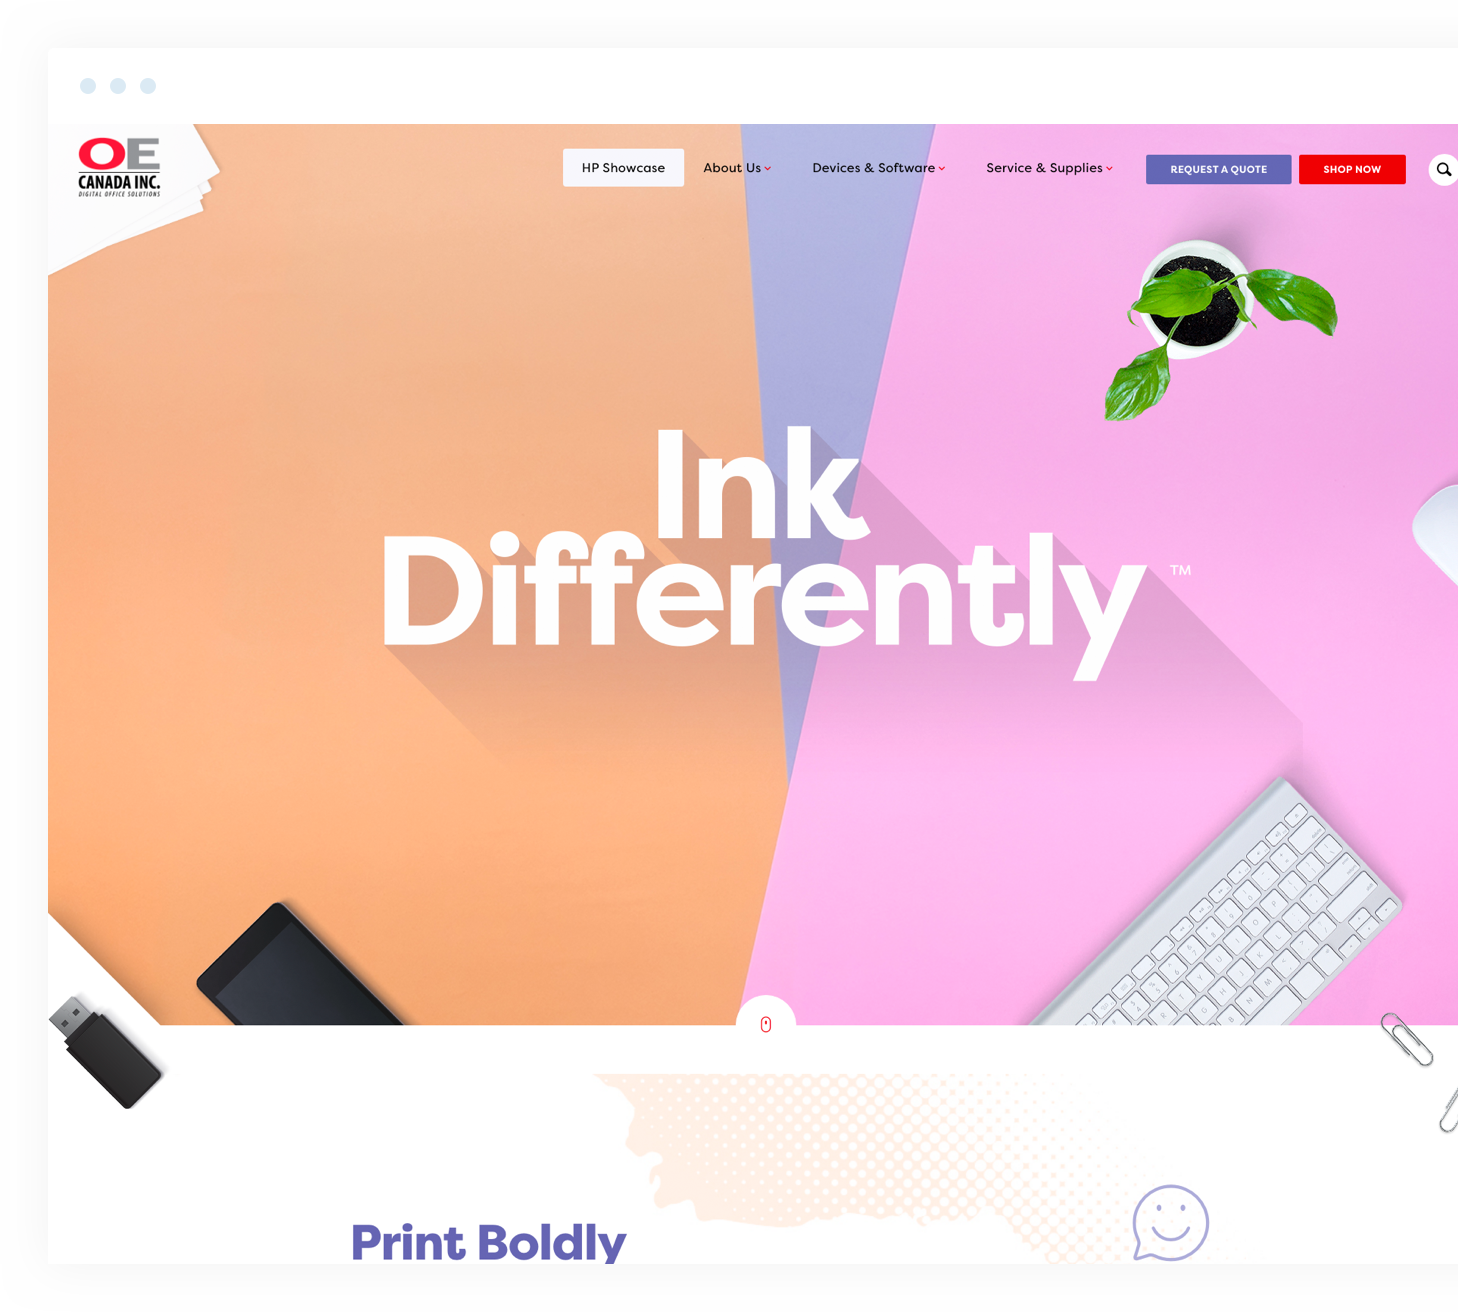 Ink differently website layout